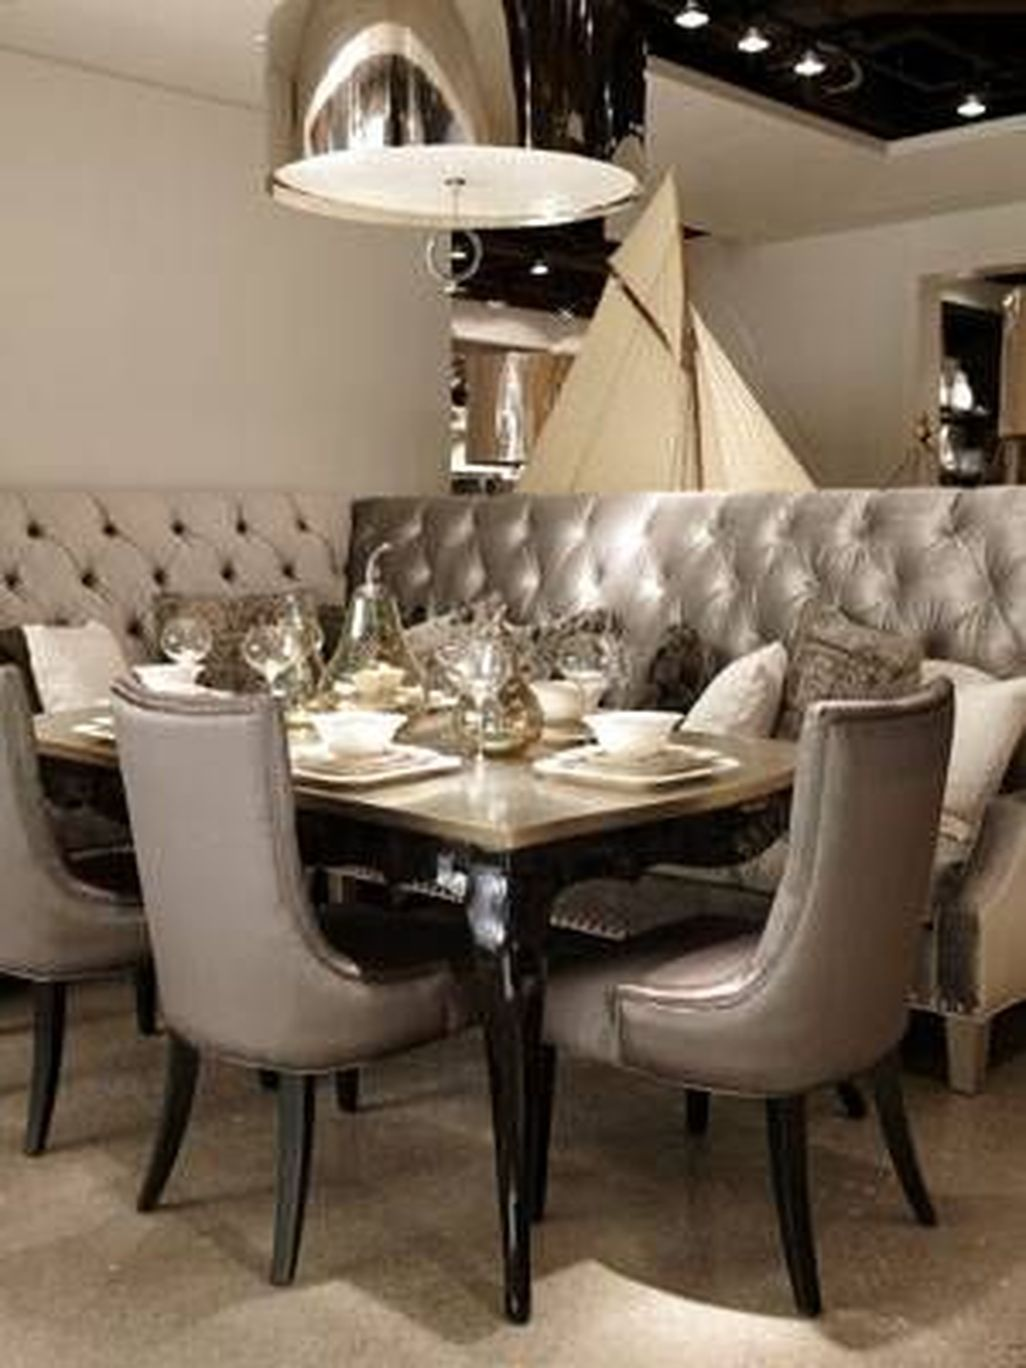 dining room banquette ideas | 41 Luxury and Elegant Dining Room Ideas | Dining Room ...